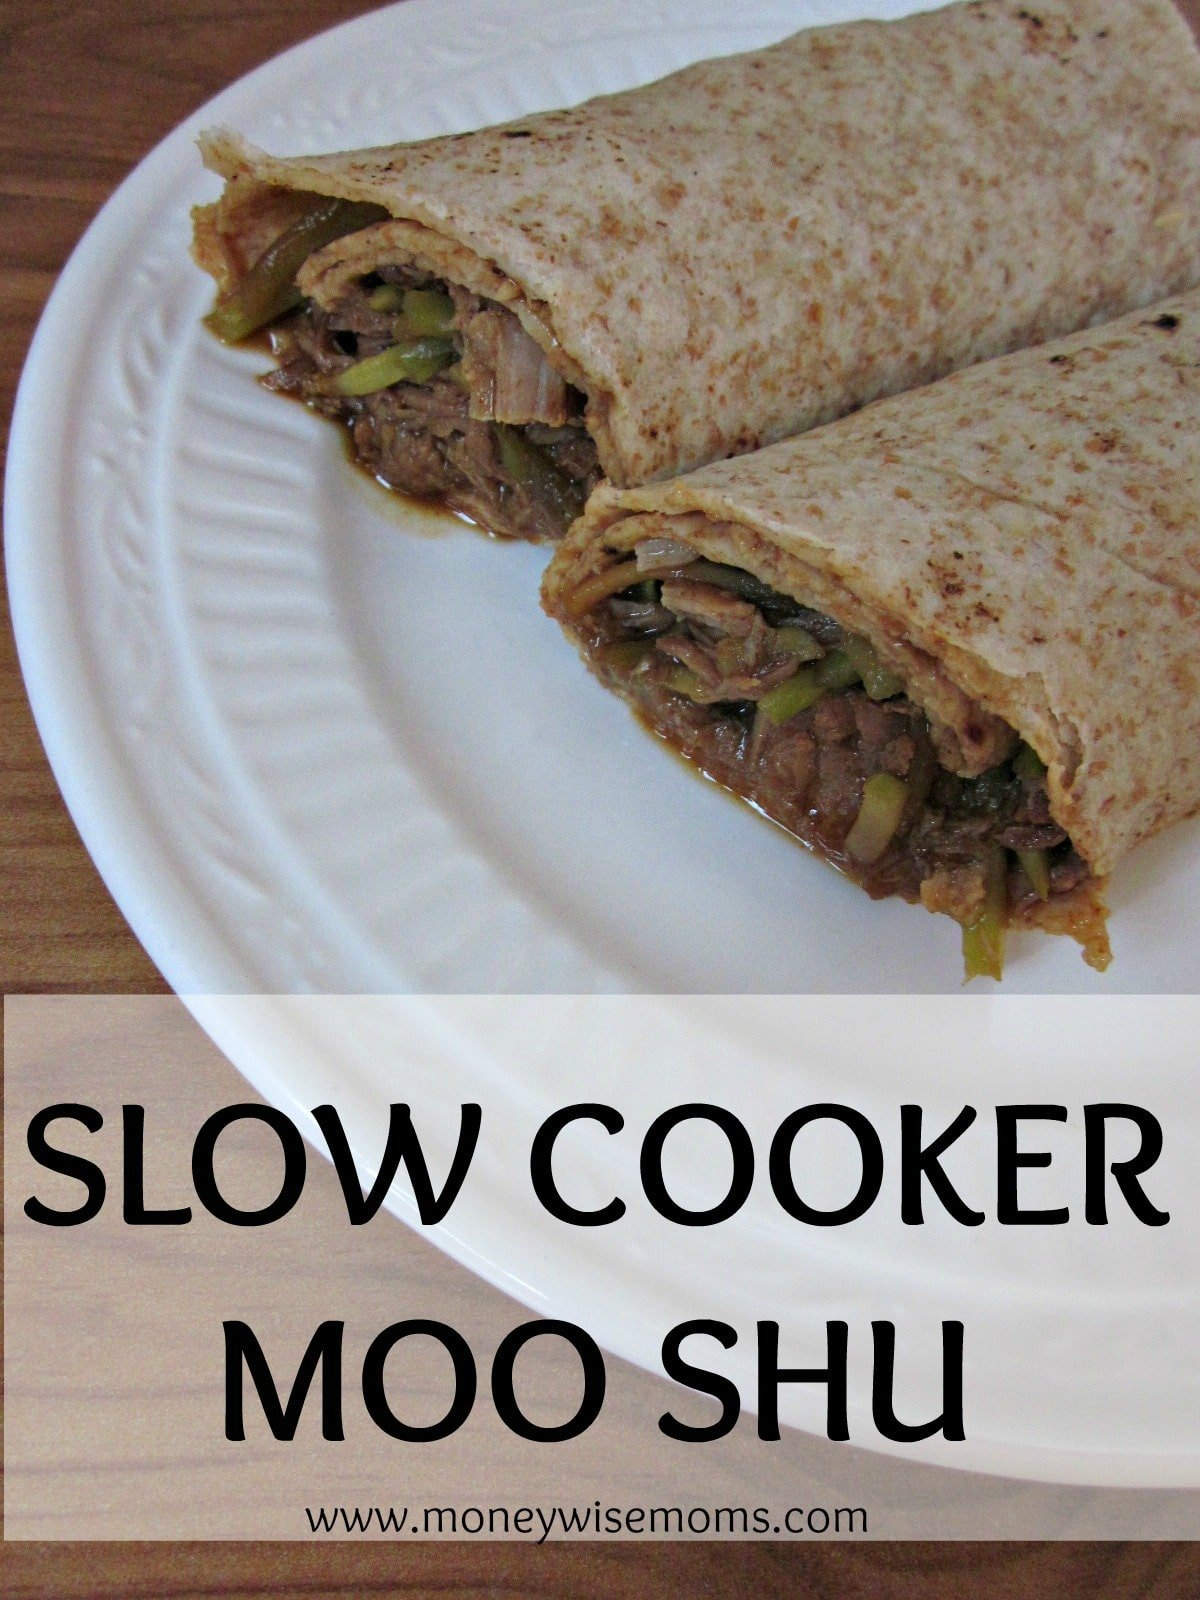 Slow Cooker Moo Shu